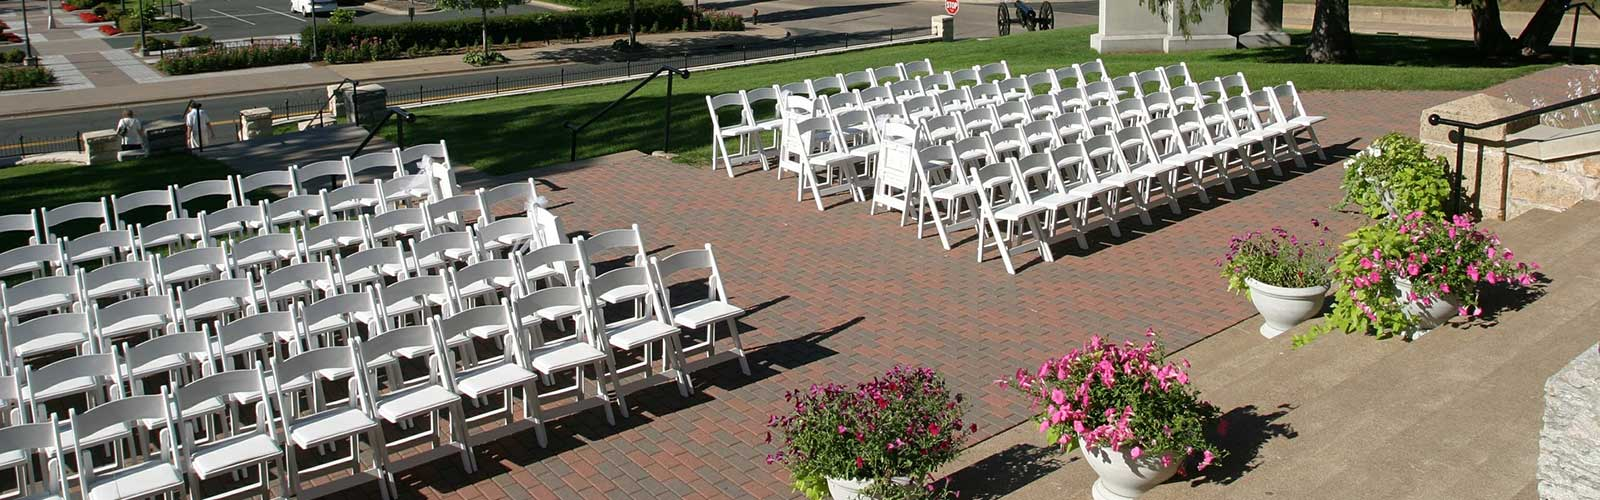 Event rental and Party rentals in Boise, Caldwell & Nampa ID